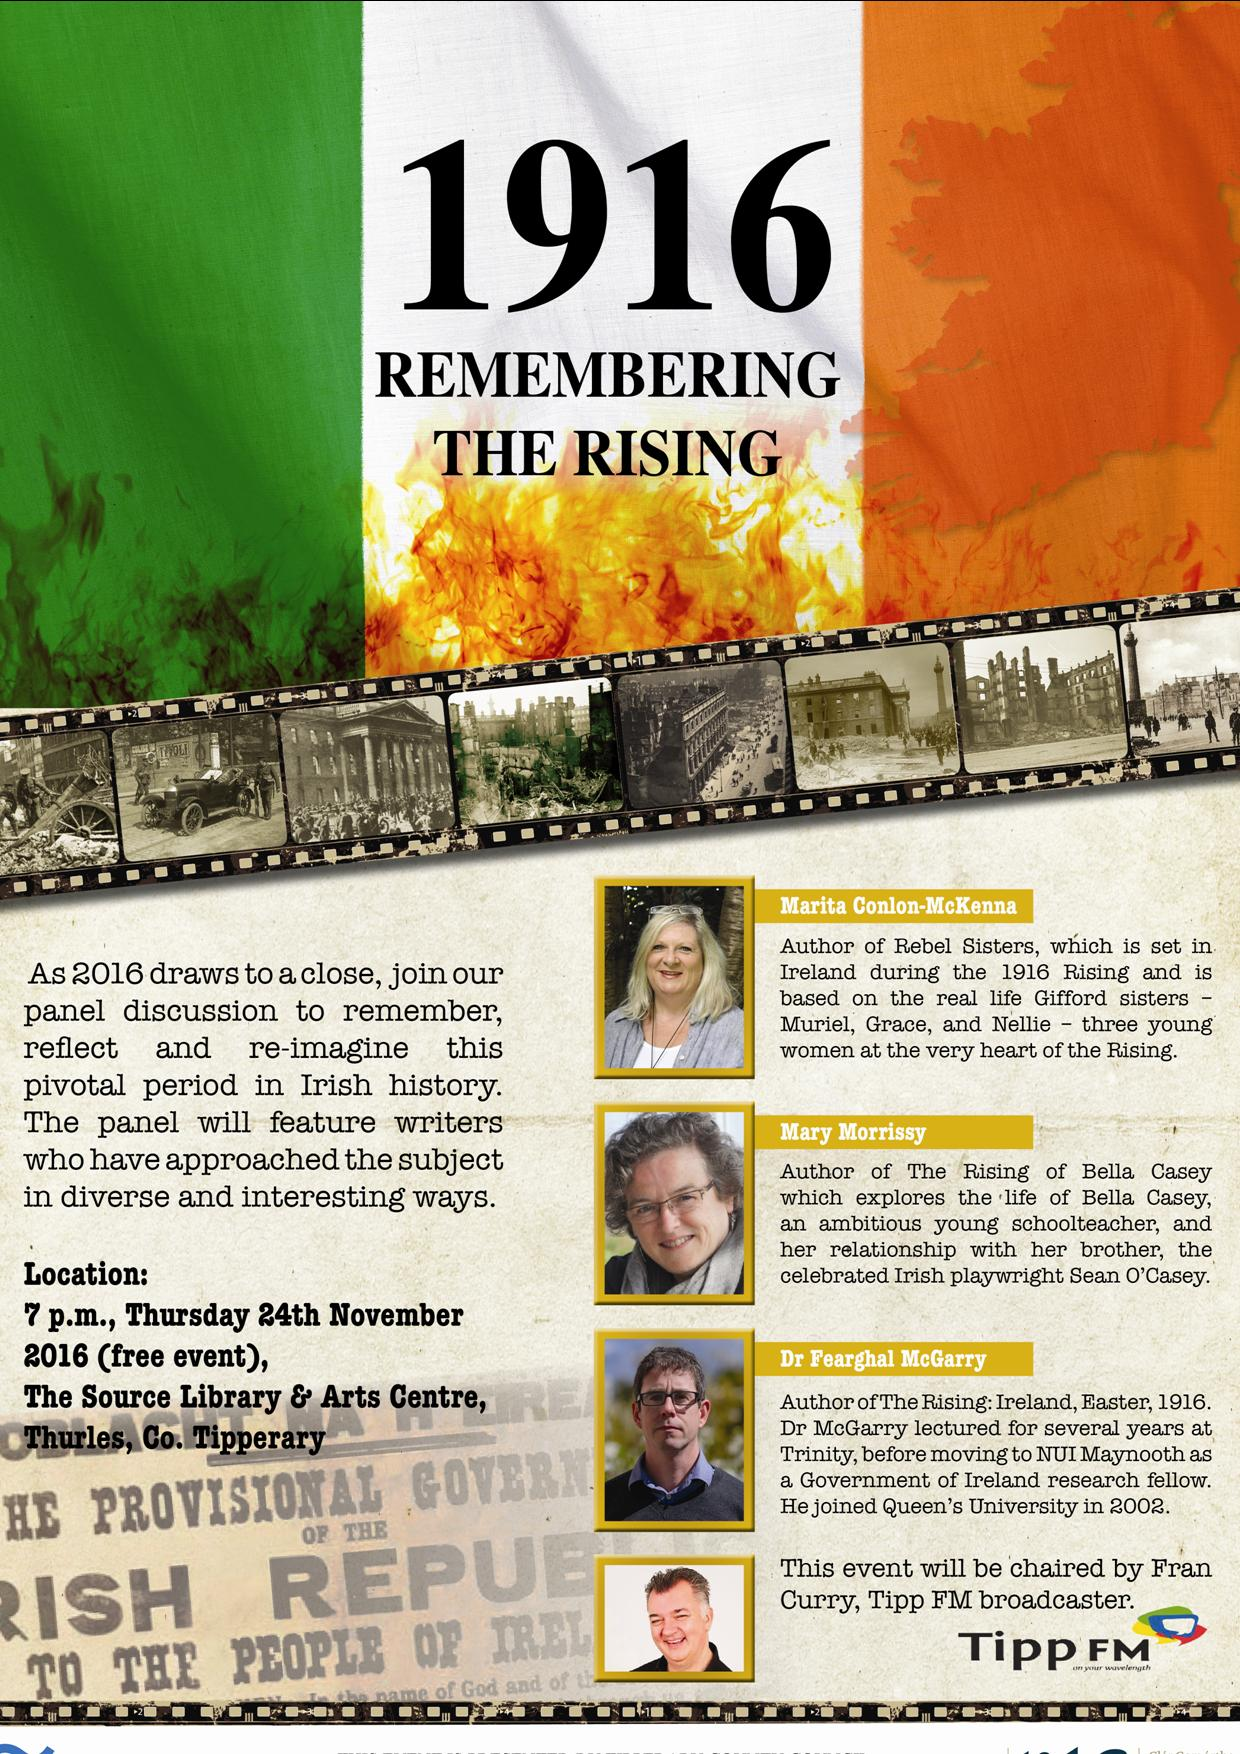 1916: Remembering The Rising, Thursday 24th November